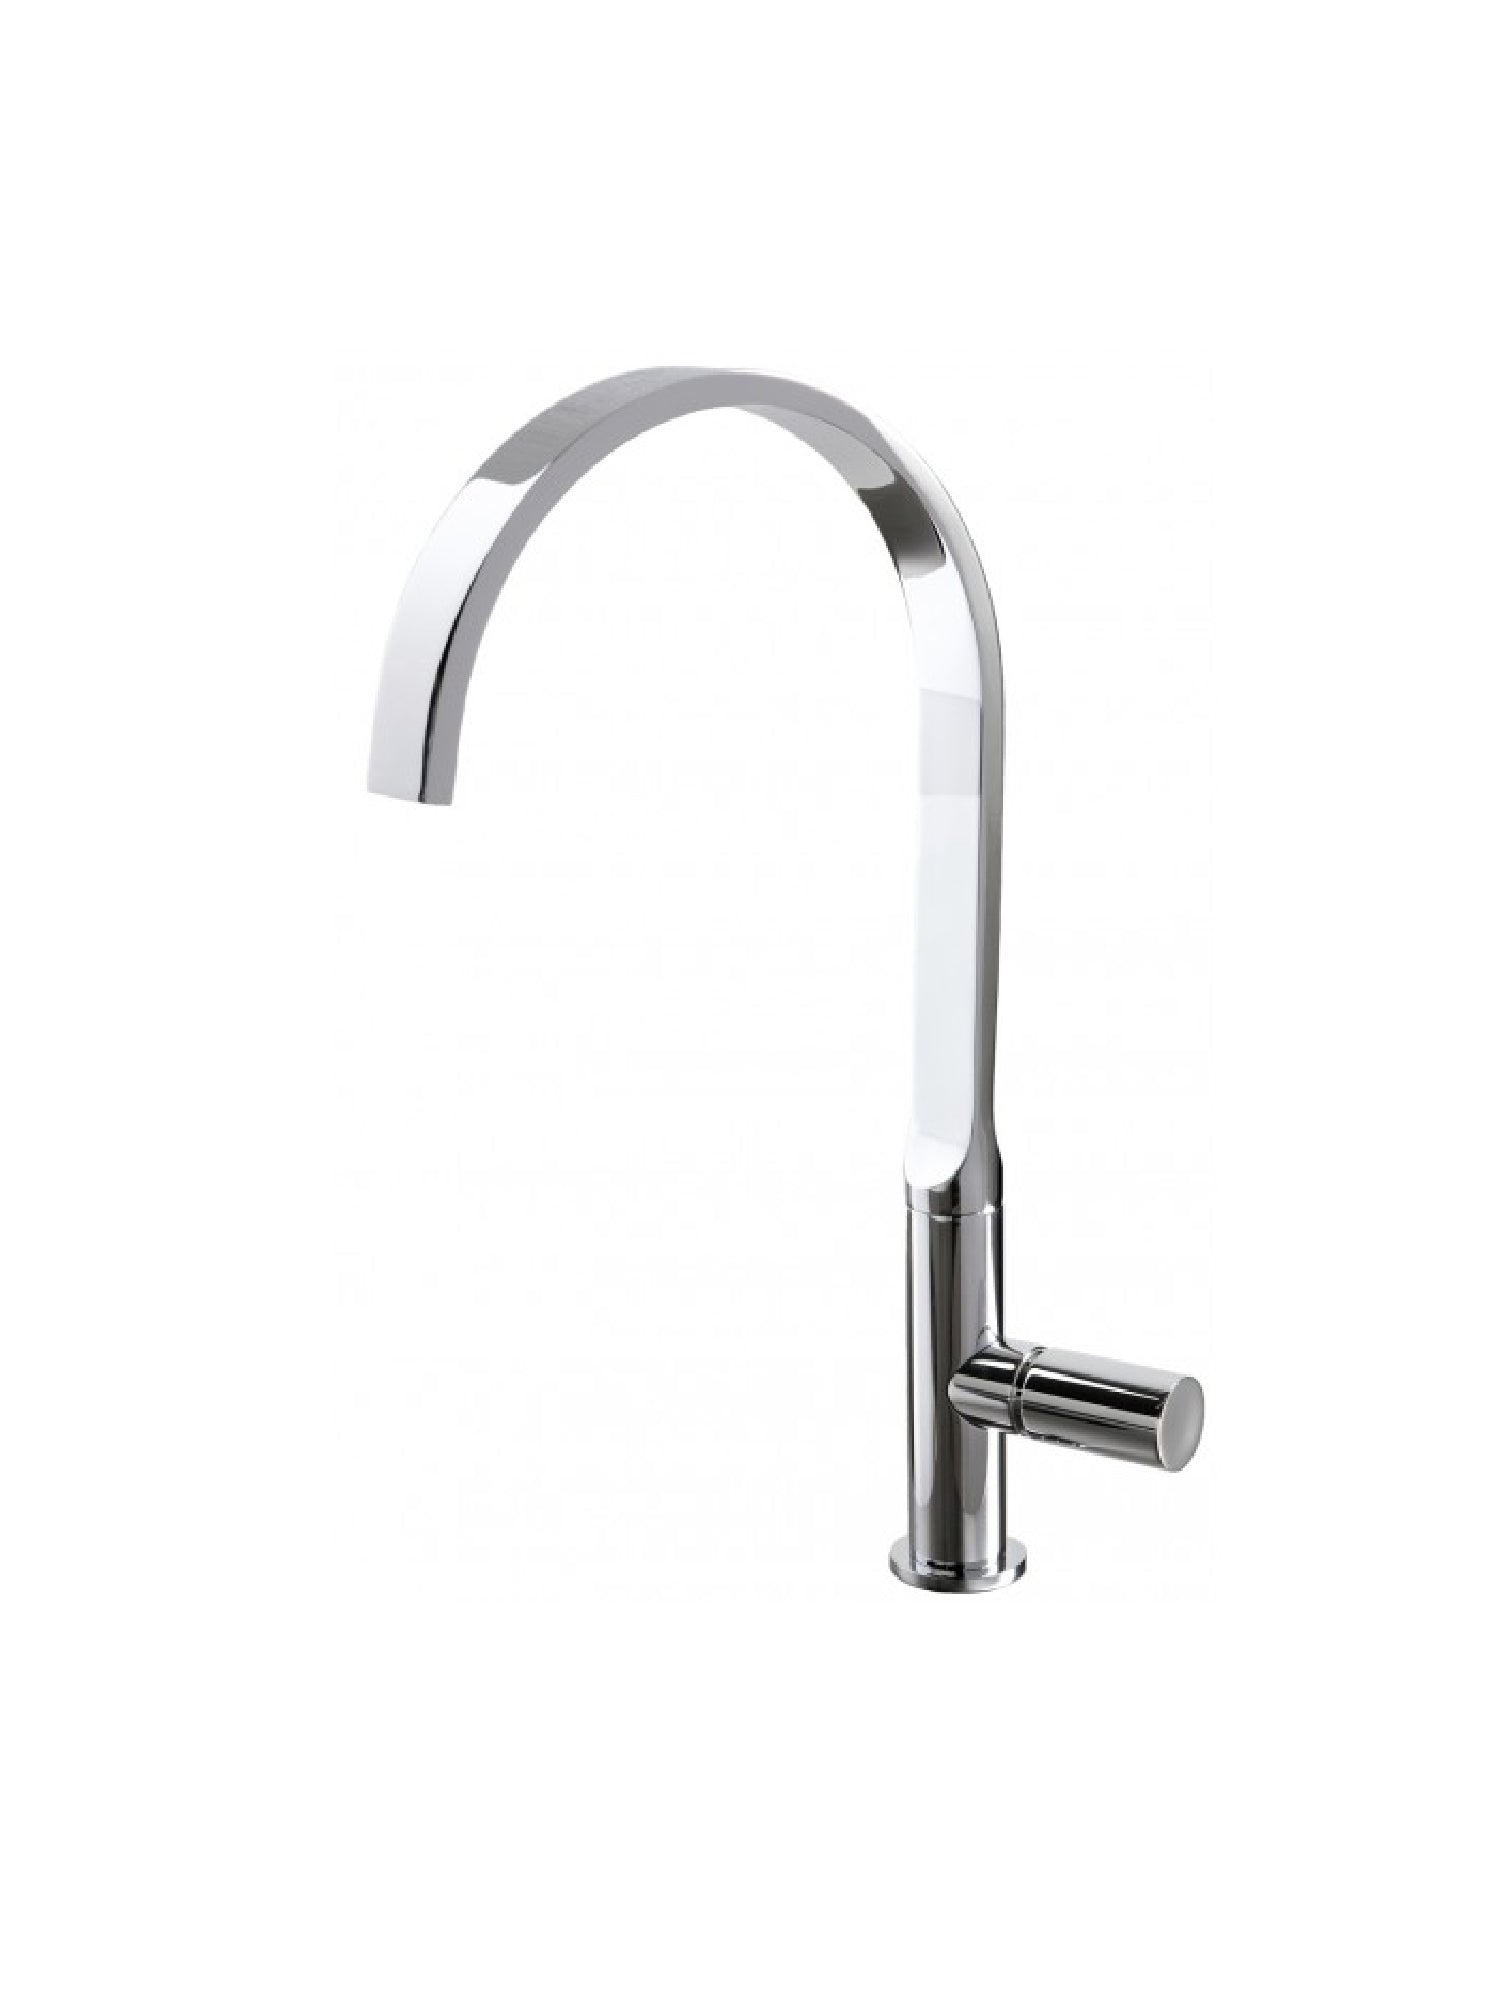 Nomos Kitchen Sink Mixer #F7107CR